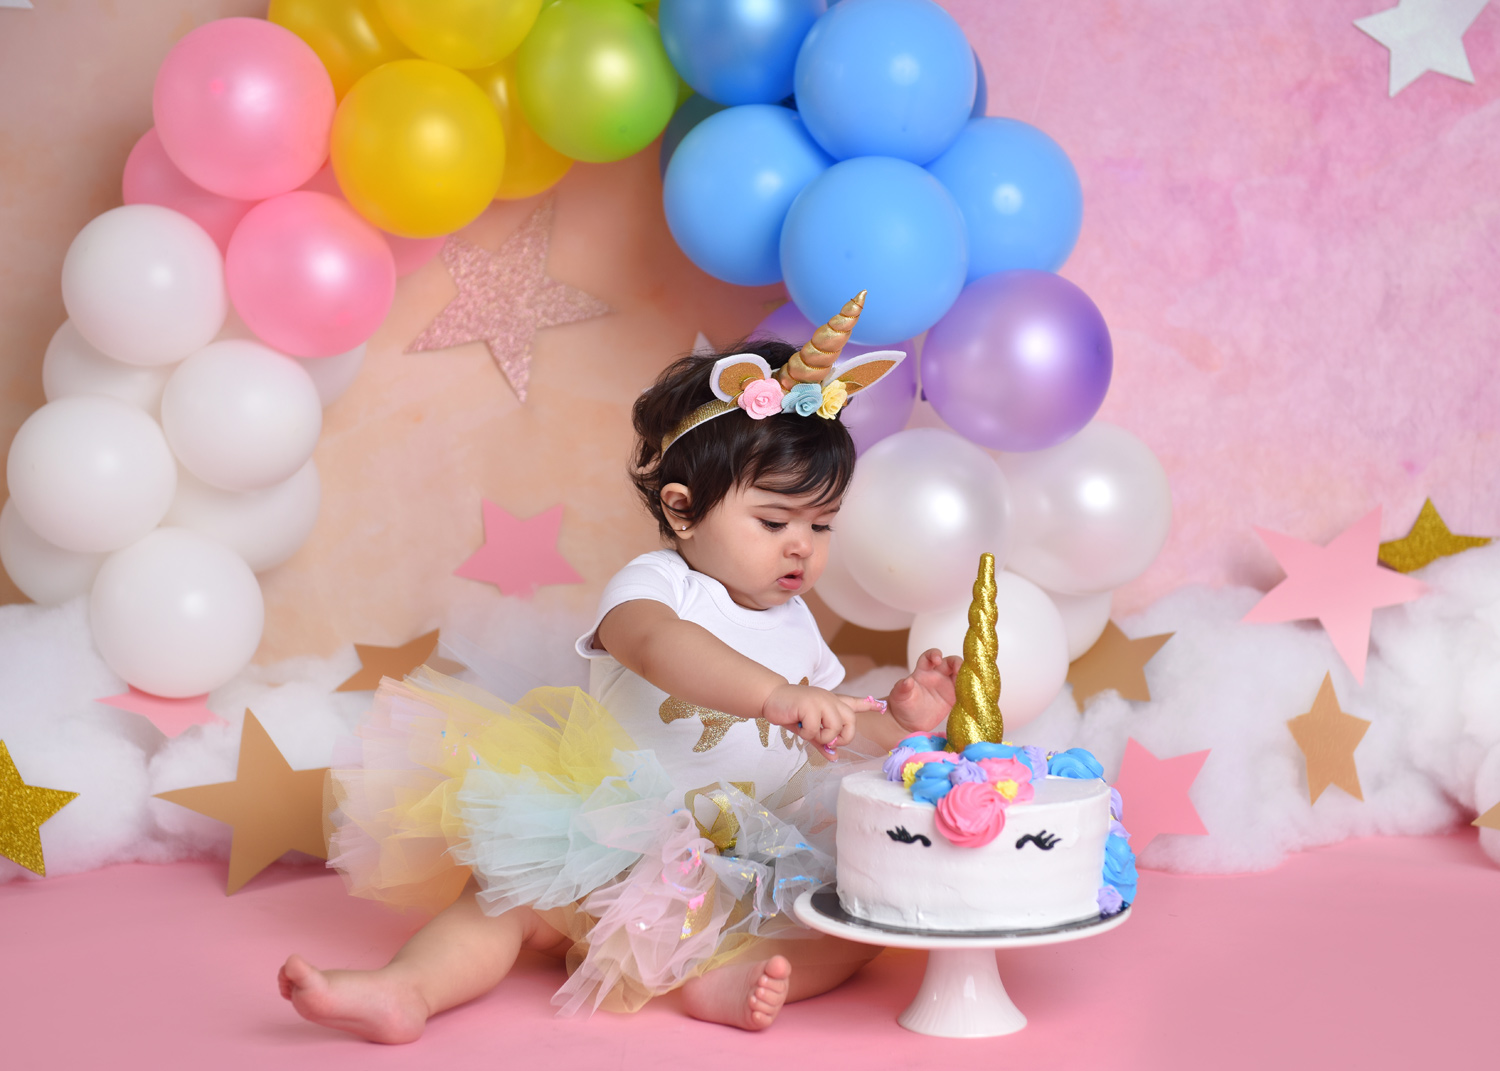 Cake smash photographer-First birthday